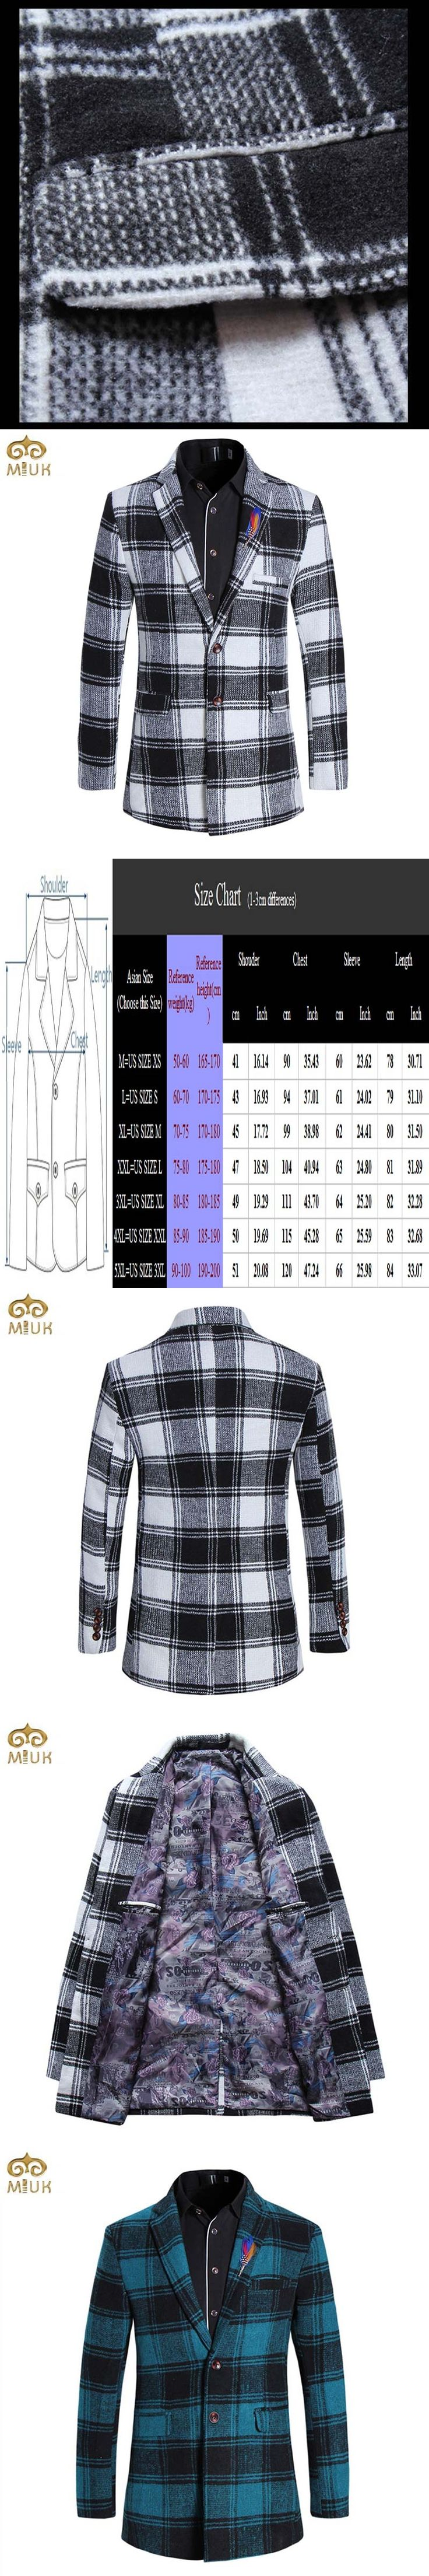 Large Size Plaid Long Blazer Men Brand Clothing 5XL Black White Blue Men Blazer Designs Slim Fit Cotton Blazer Masculino 2017